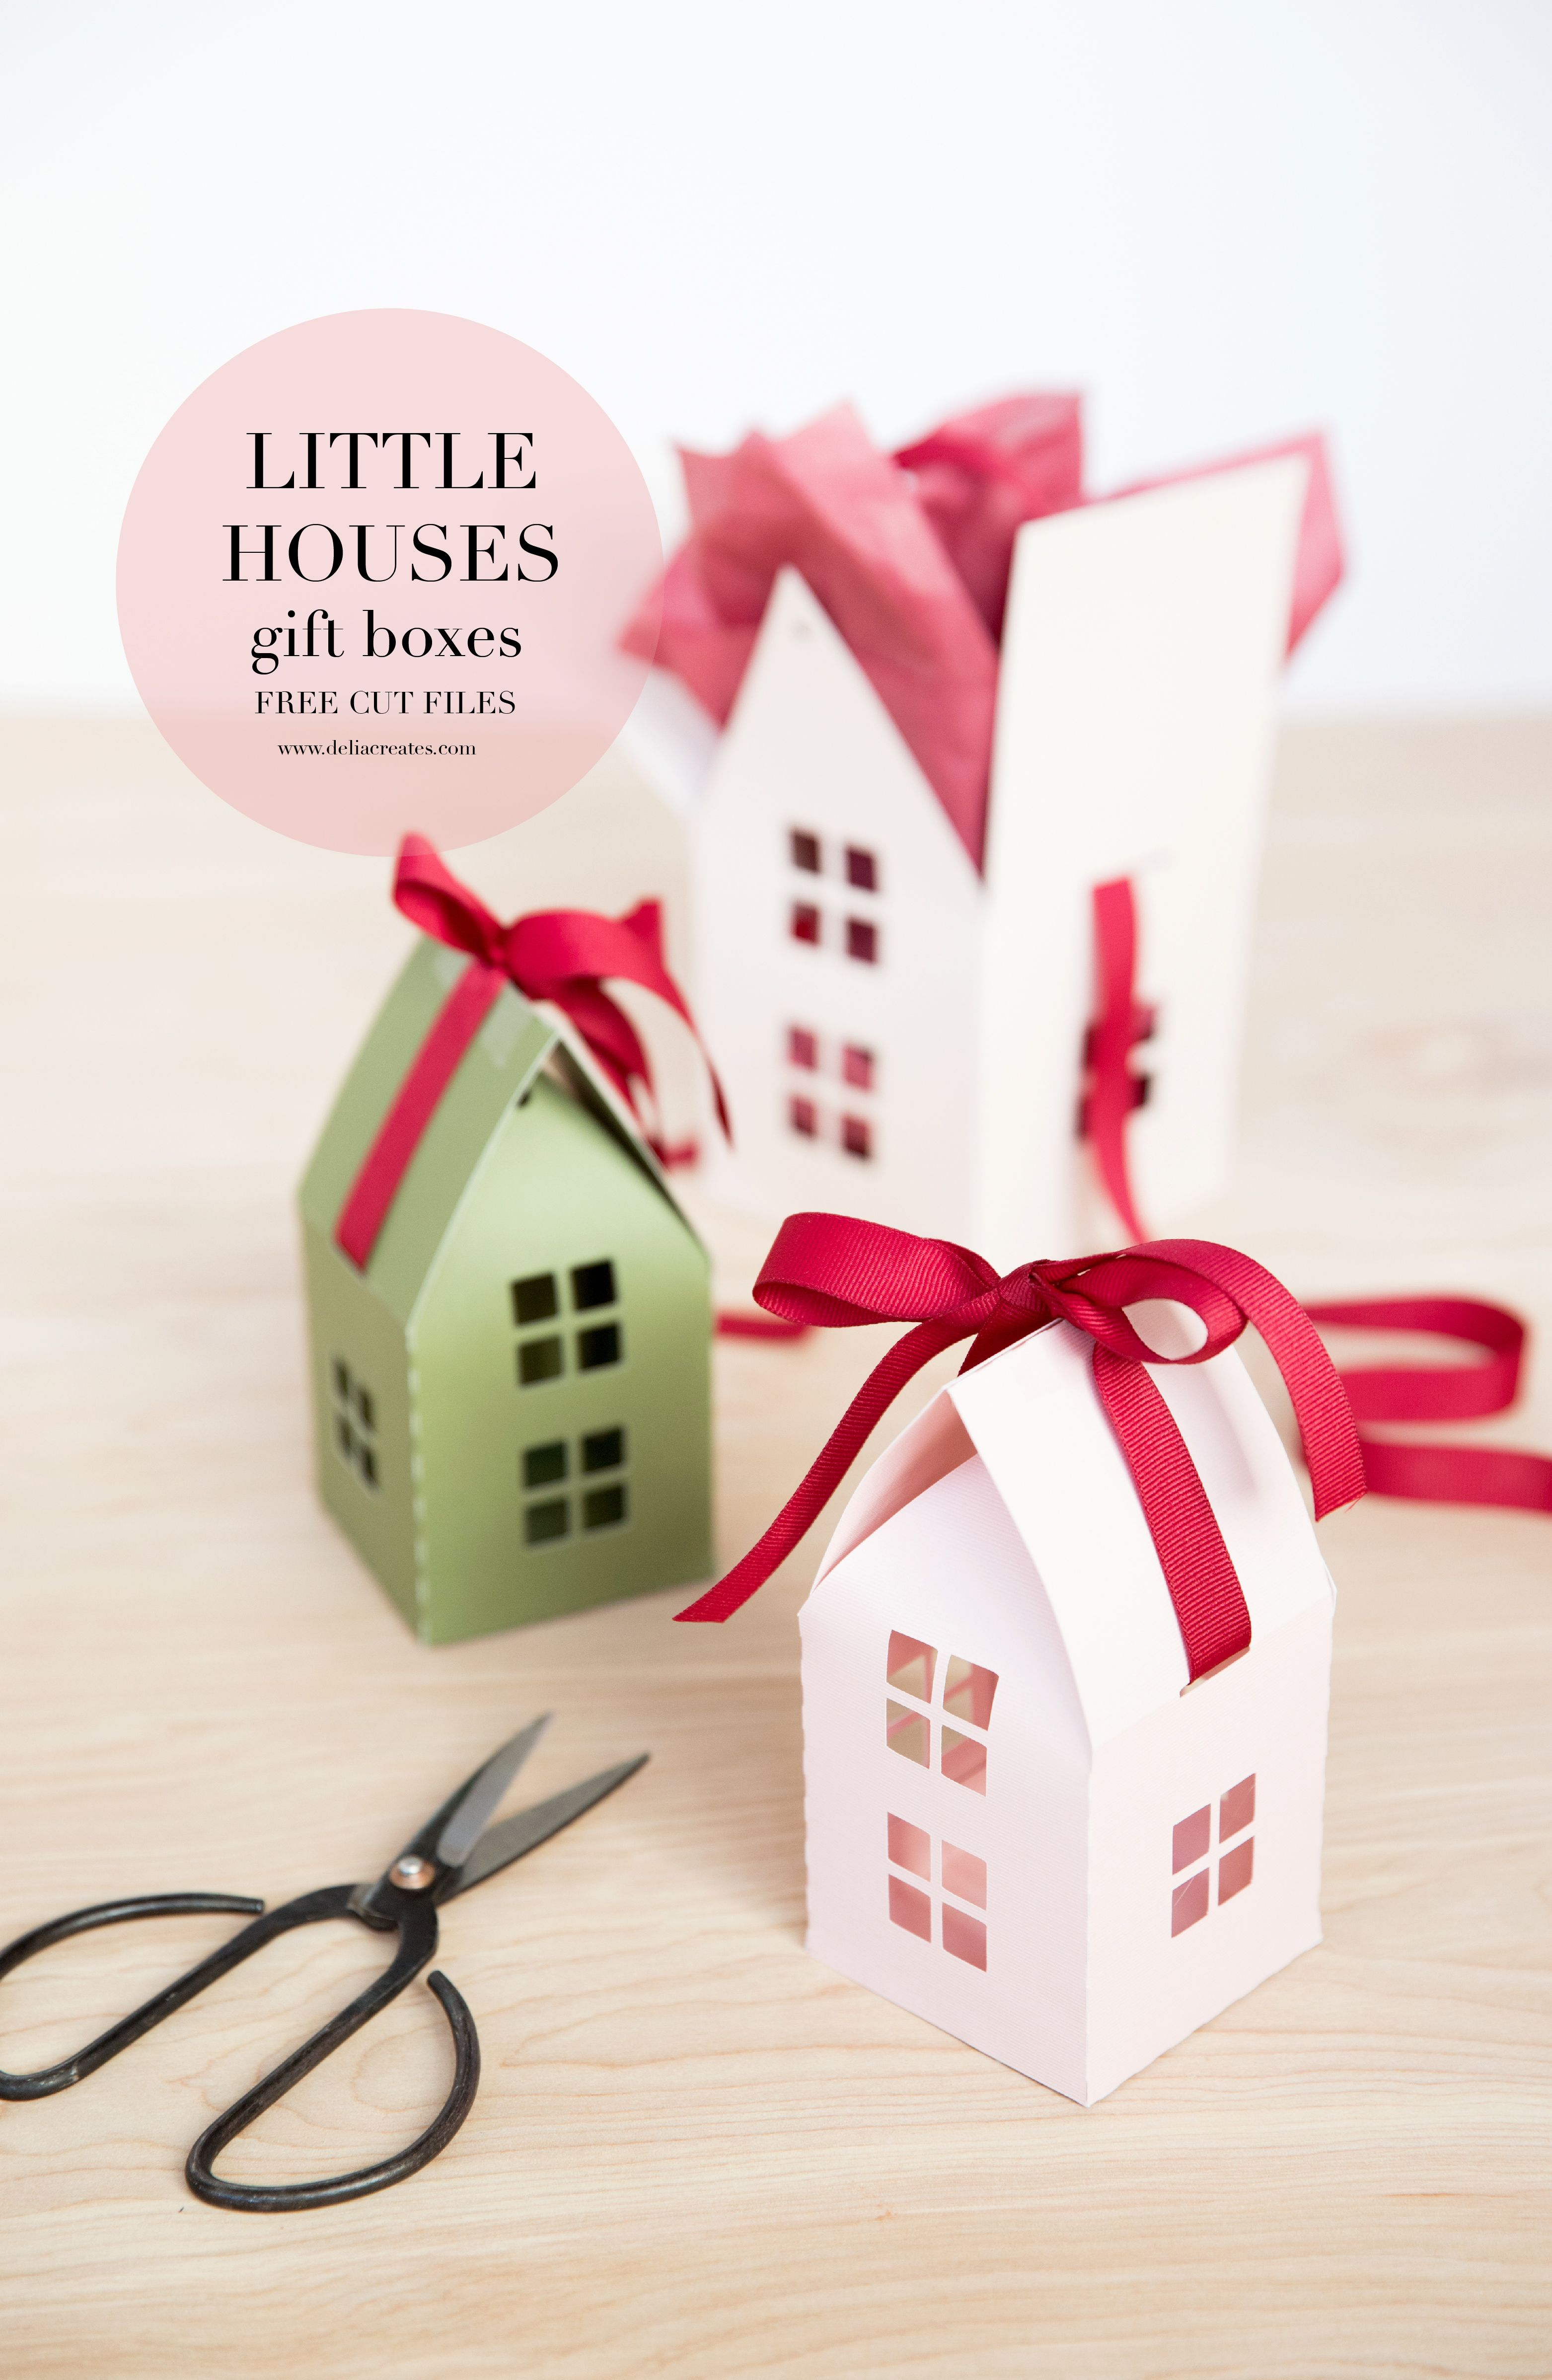 Little house gift box free cut files deliacreates little house gift box free cut files deliacreates negle Images